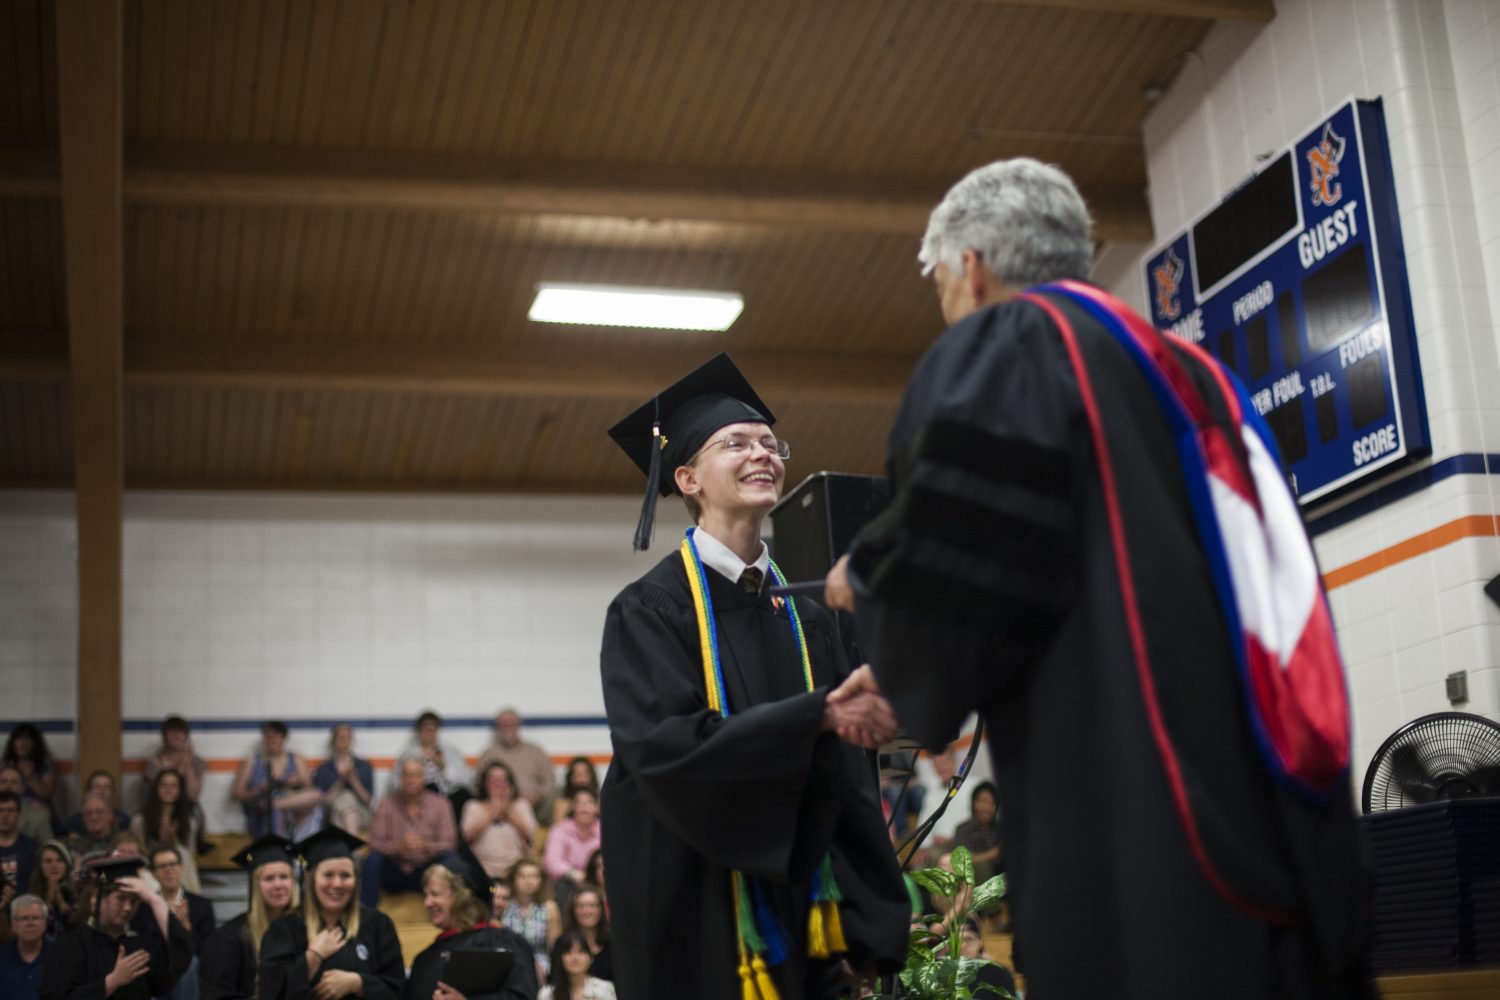 president shaking hands with student at commencement